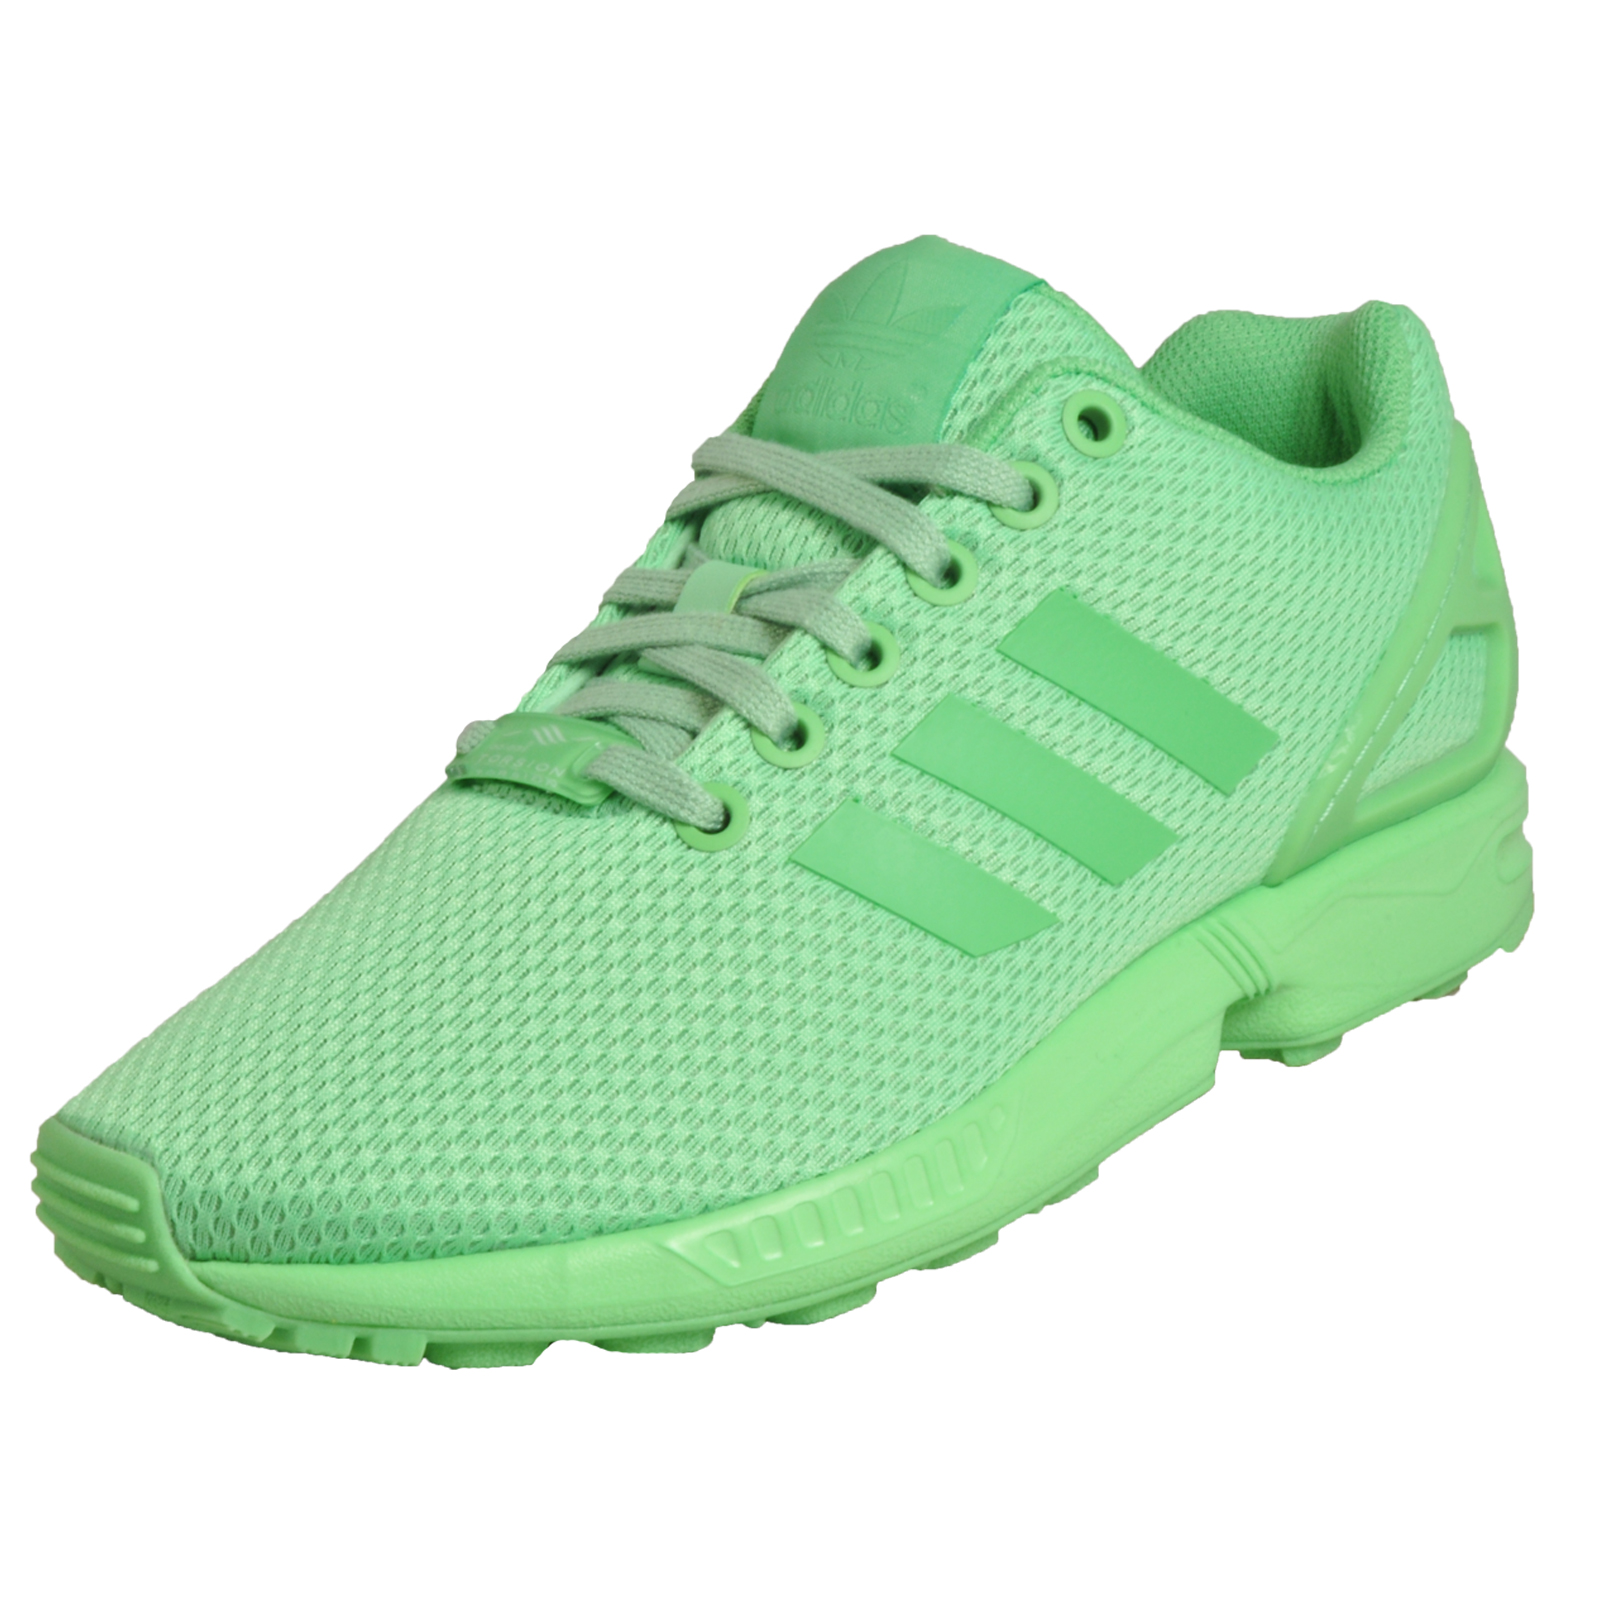 9c0e3fdaf Details about Adidas Originals ZX Flux Women s Classic Casual Gym Fitness  Trainers Green